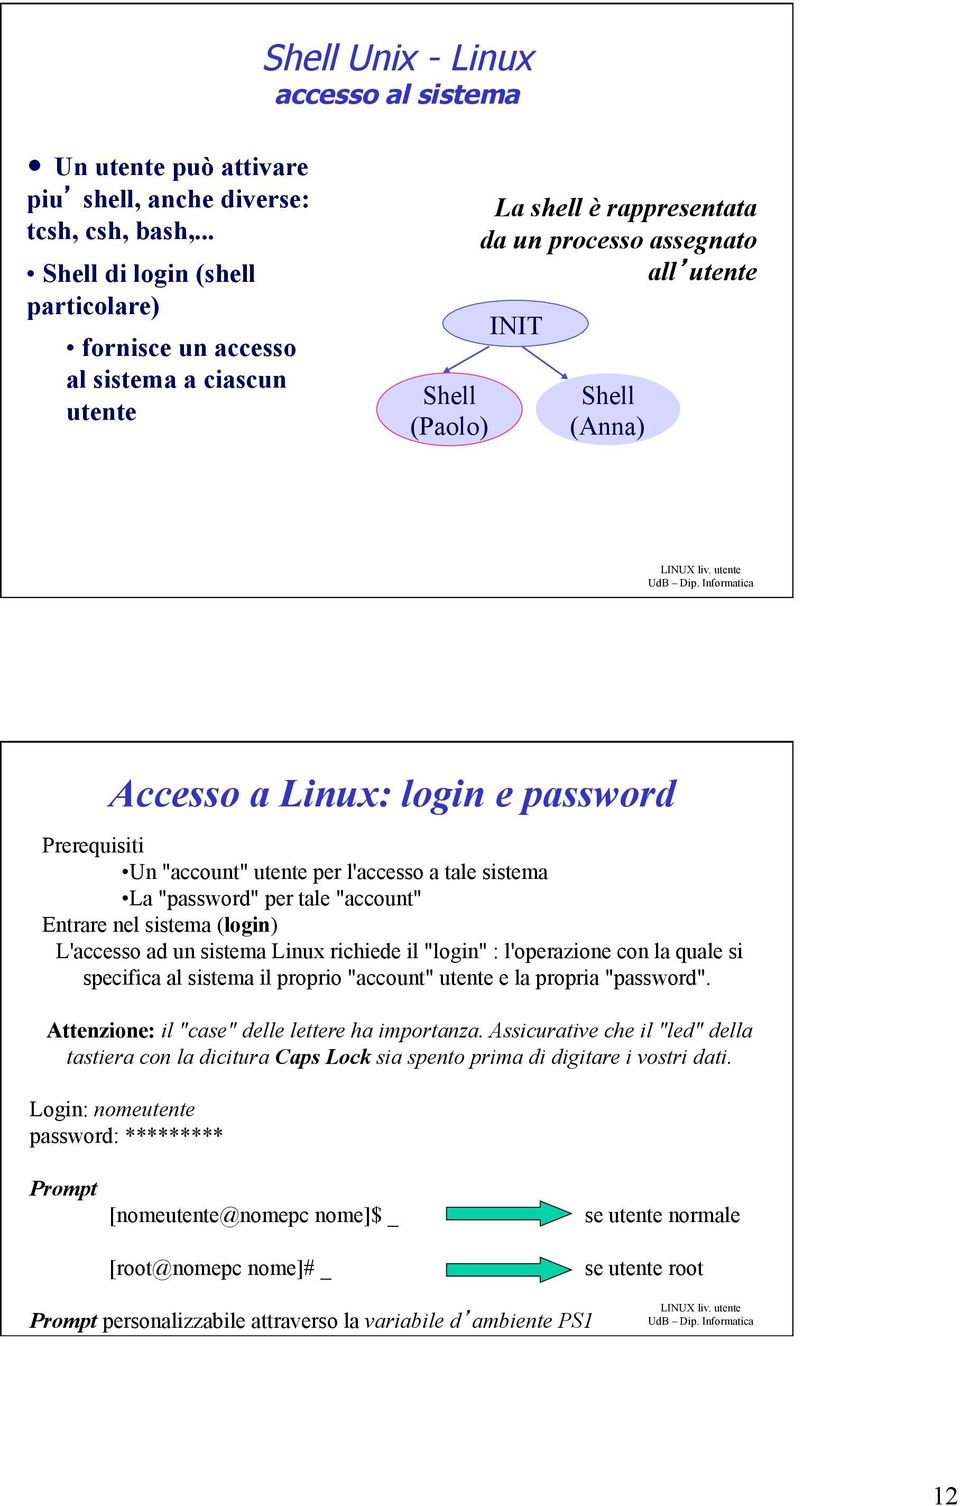 "login e password Prerequisiti Un ""account"" utente per l'accesso a tale sistema La ""password"" per tale ""account"" Entrare nel sistema (login) L'accesso ad un sistema Linux richiede il ""login"" :"